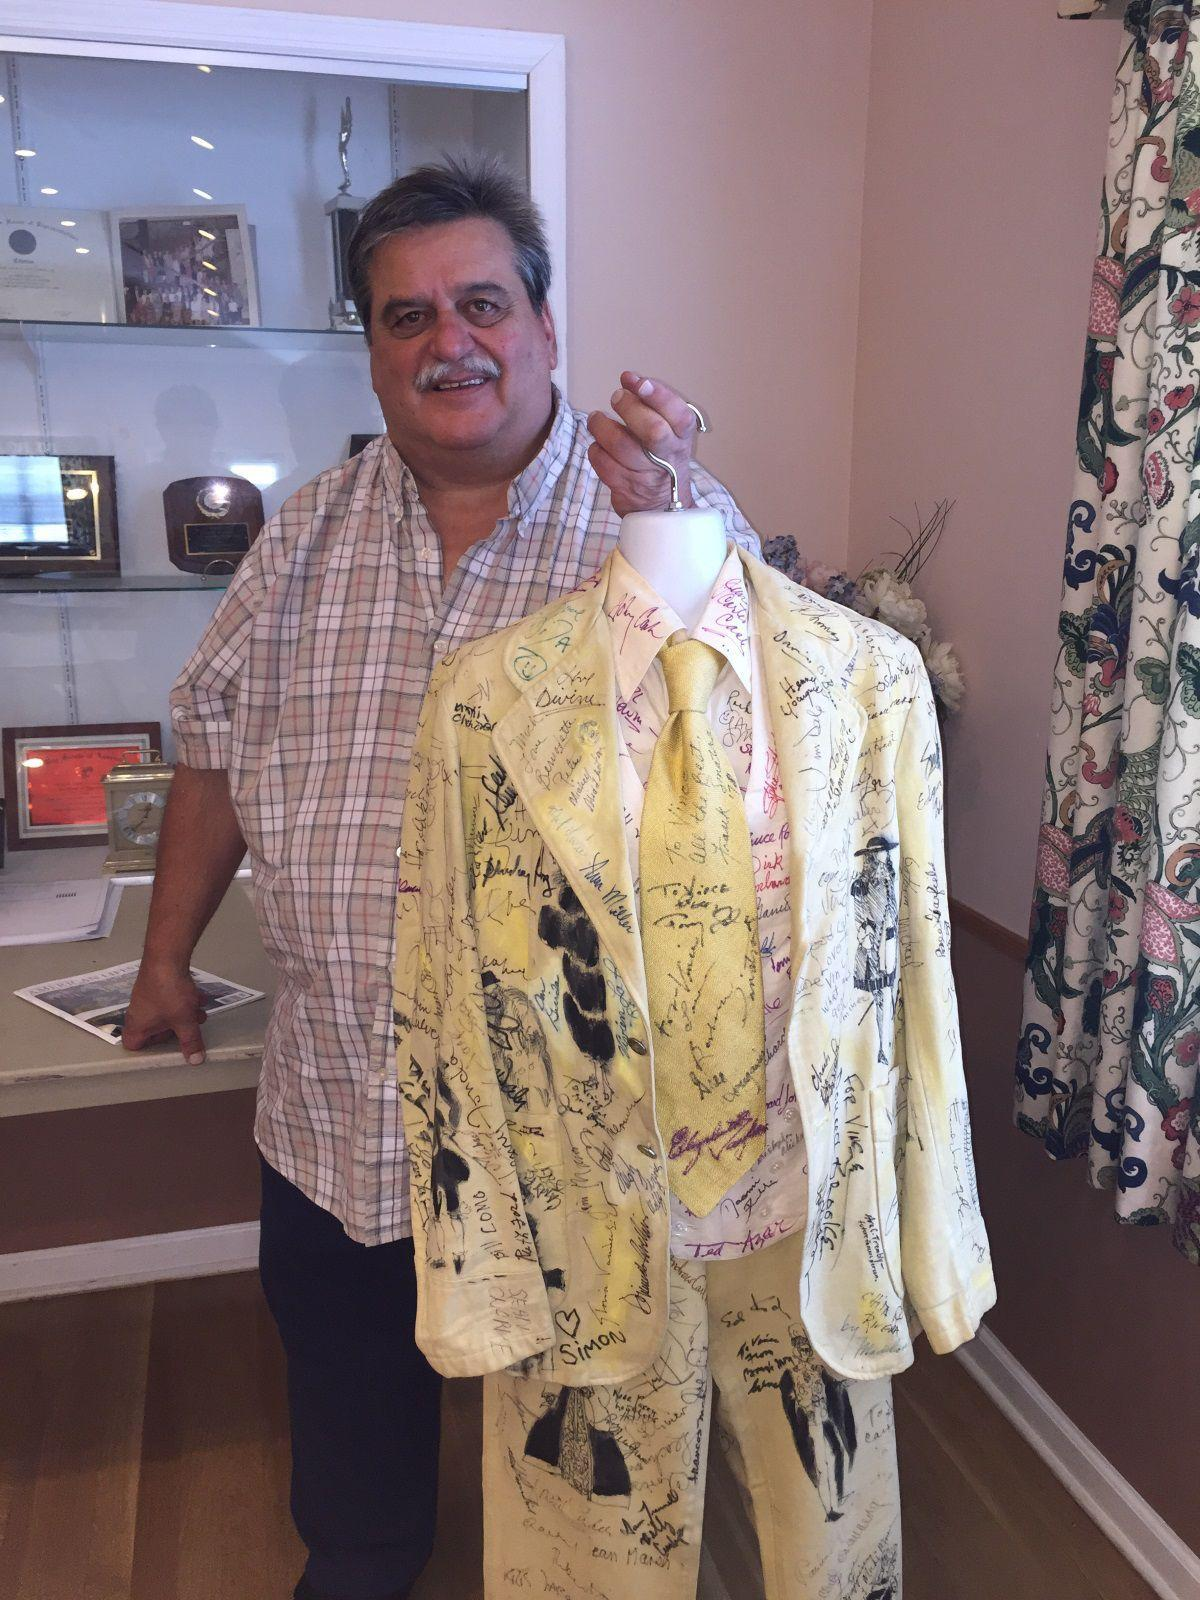 Stirling man regales with tales of autograph suit